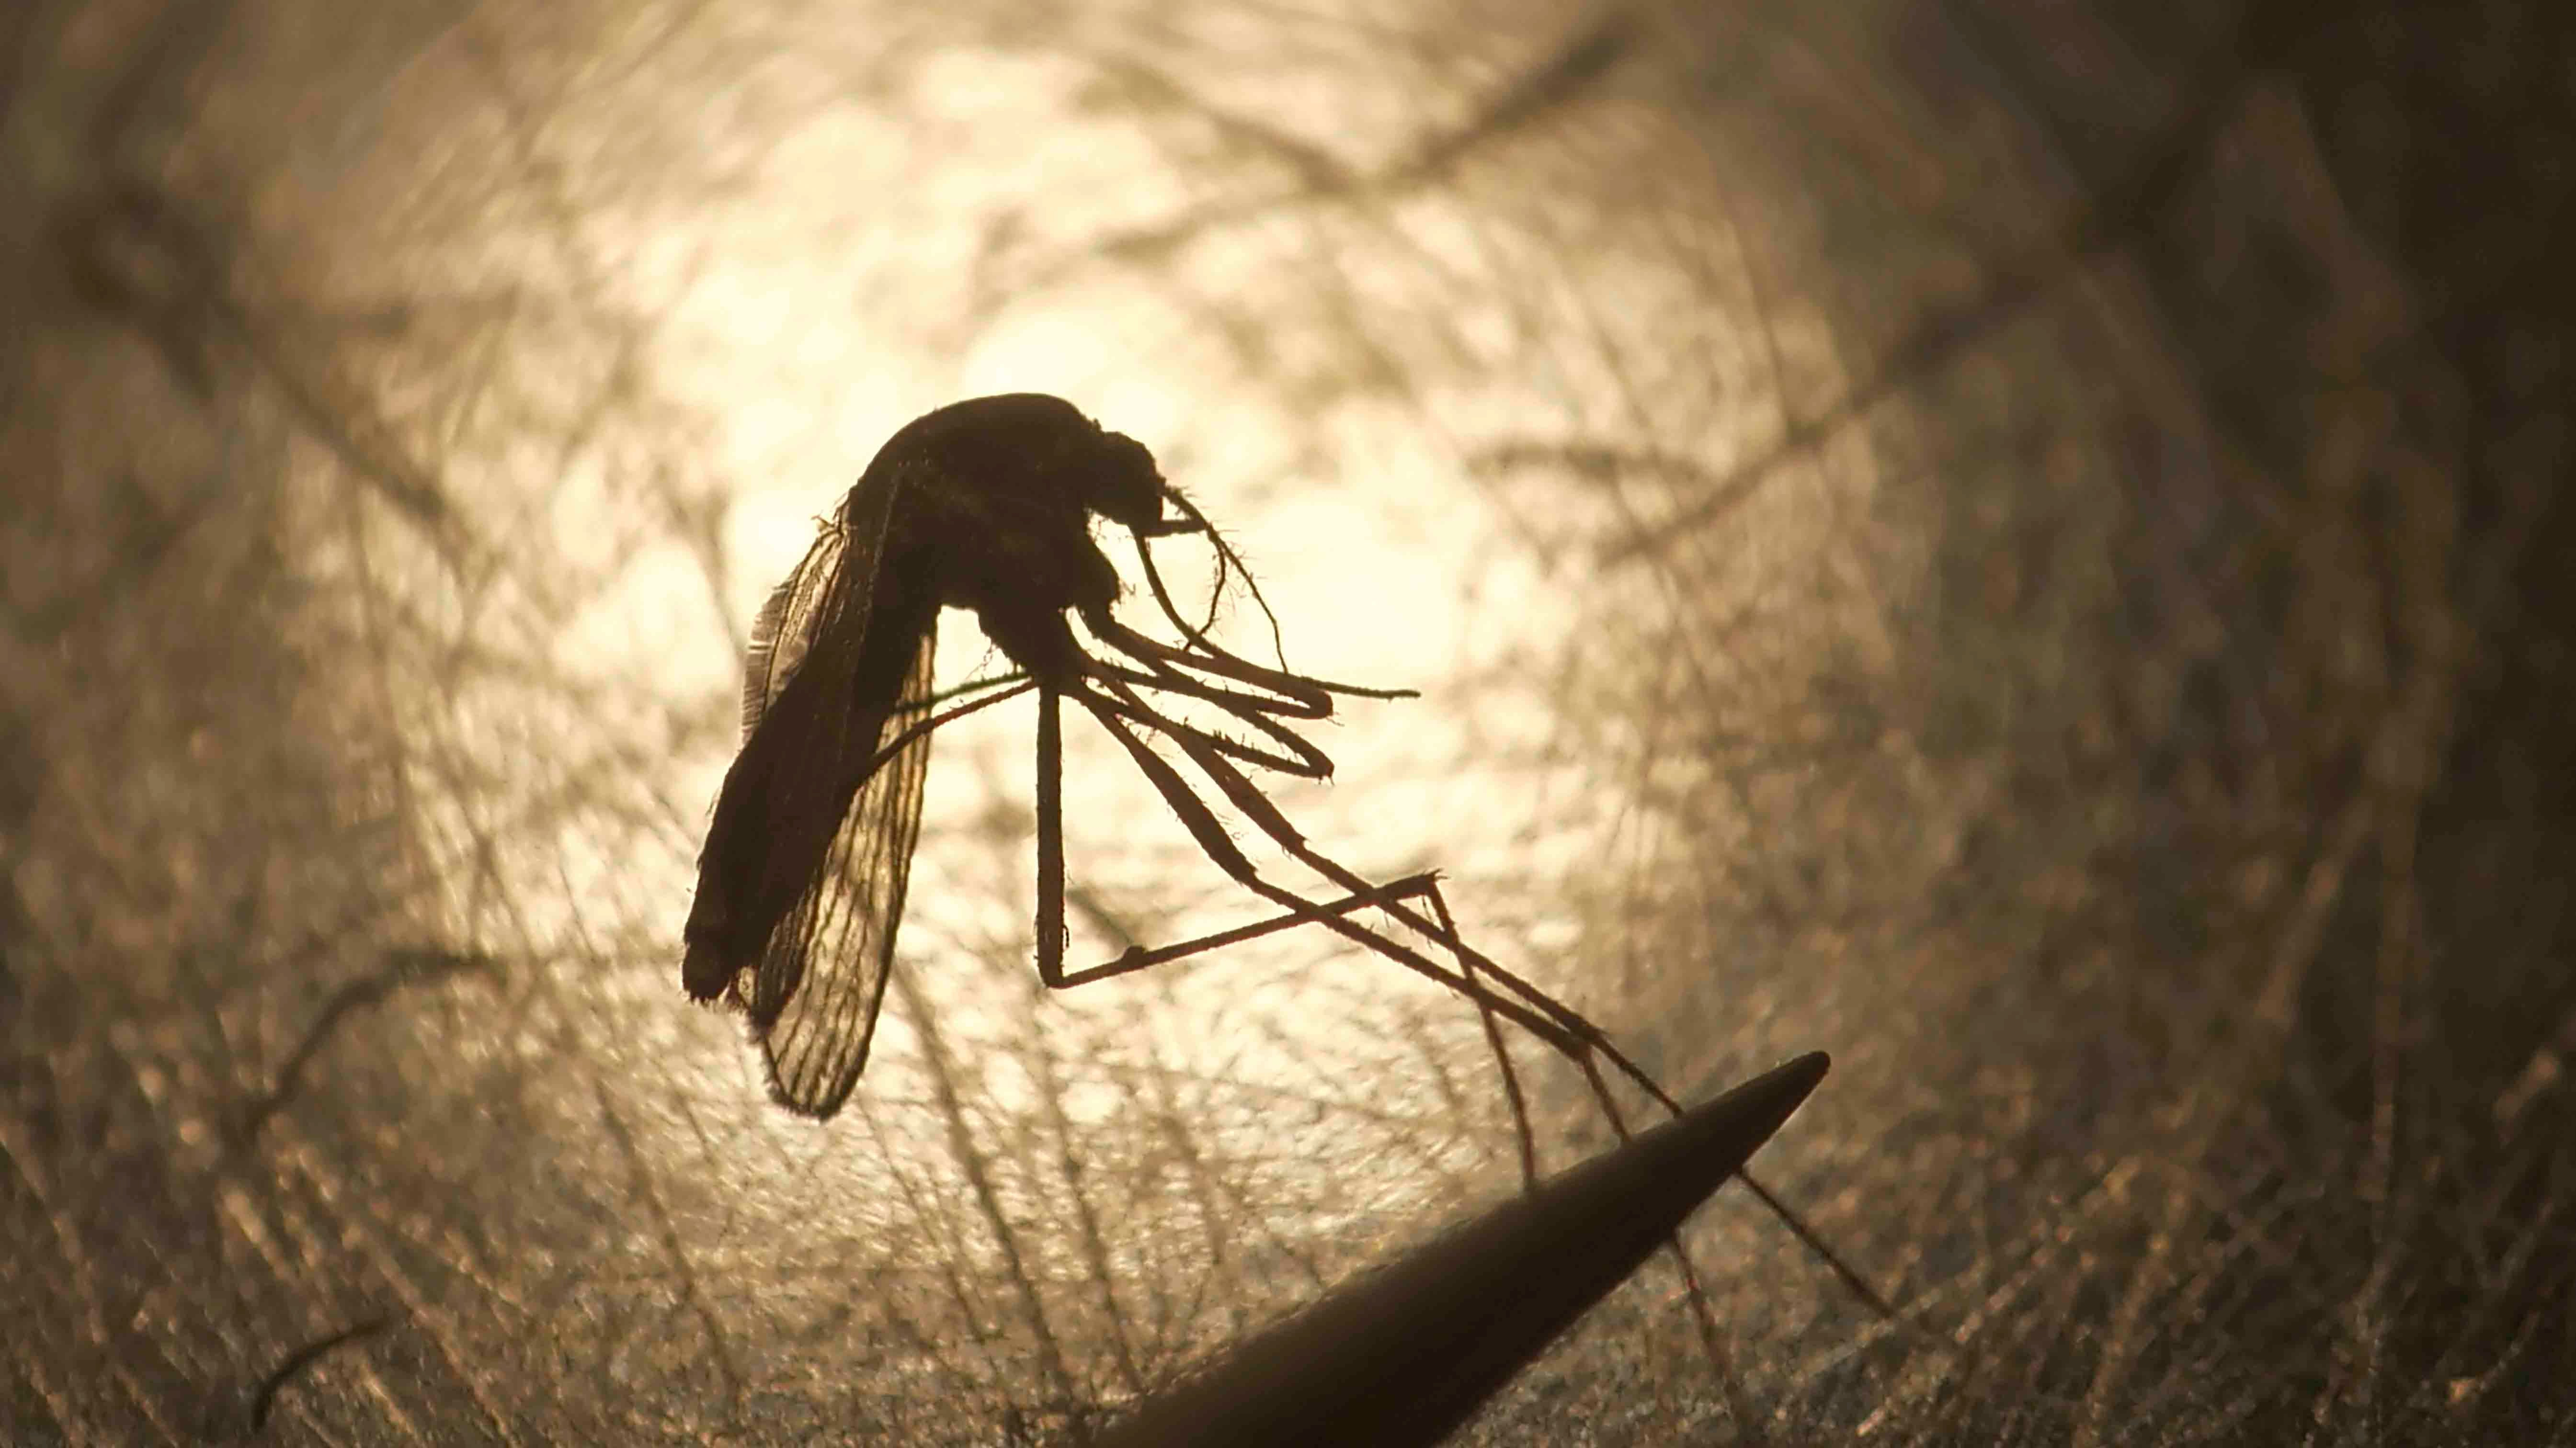 Mosquito-Borne EEE Outbreak Hits Parts of U.S. in Record Numbers | The Weather Channel